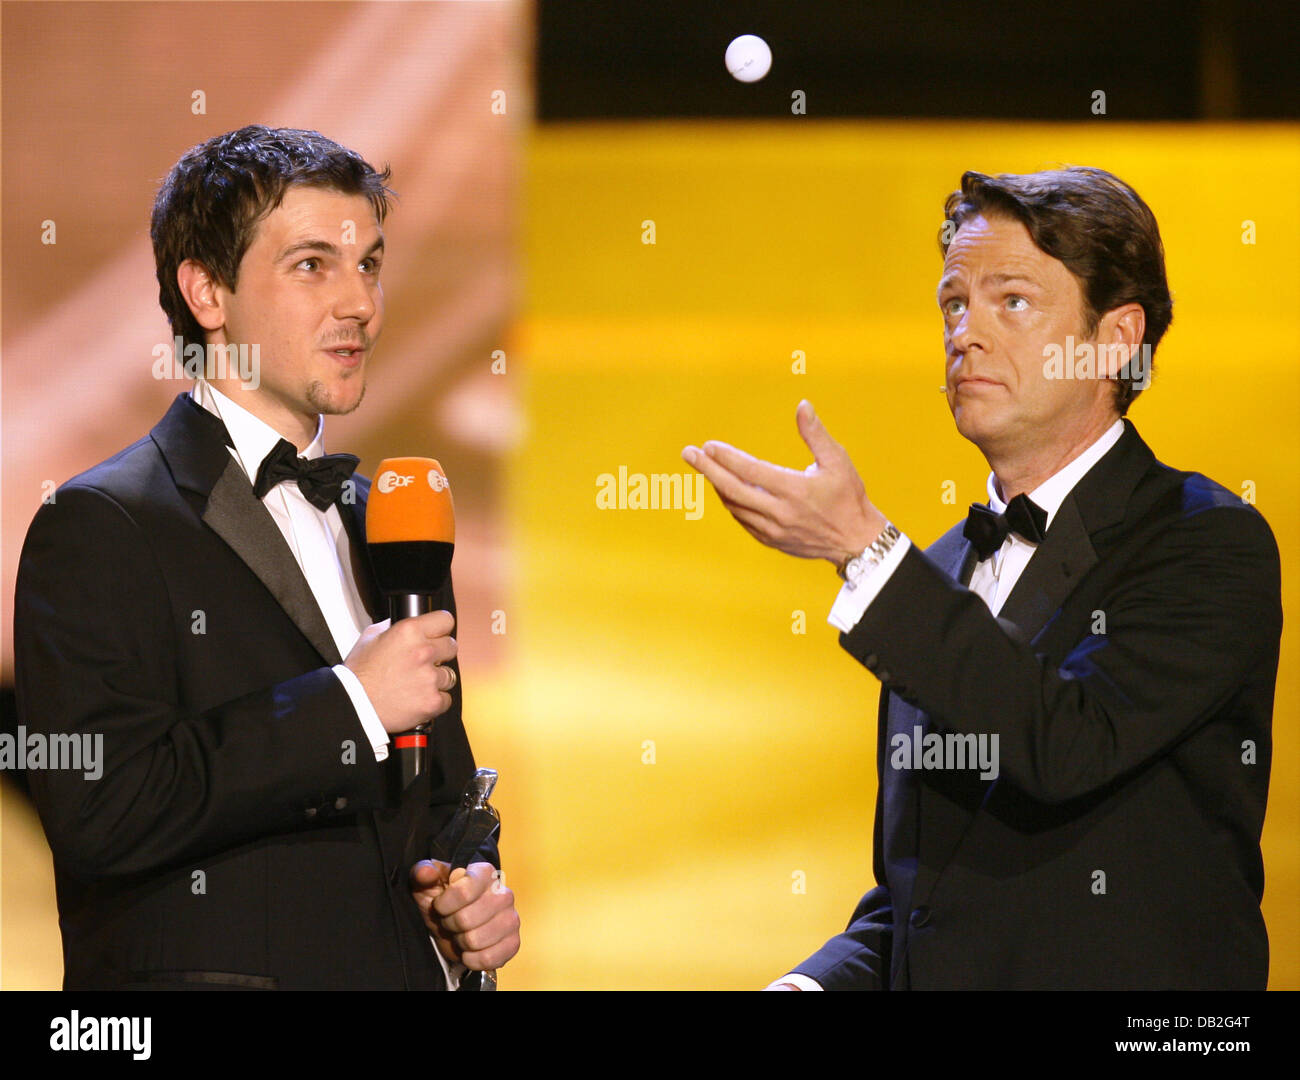 Rudi Cerne (R), host of the procalmation of the '2007 Sports Personality' (Sportler des Jahres 2007), throws - Stock Image